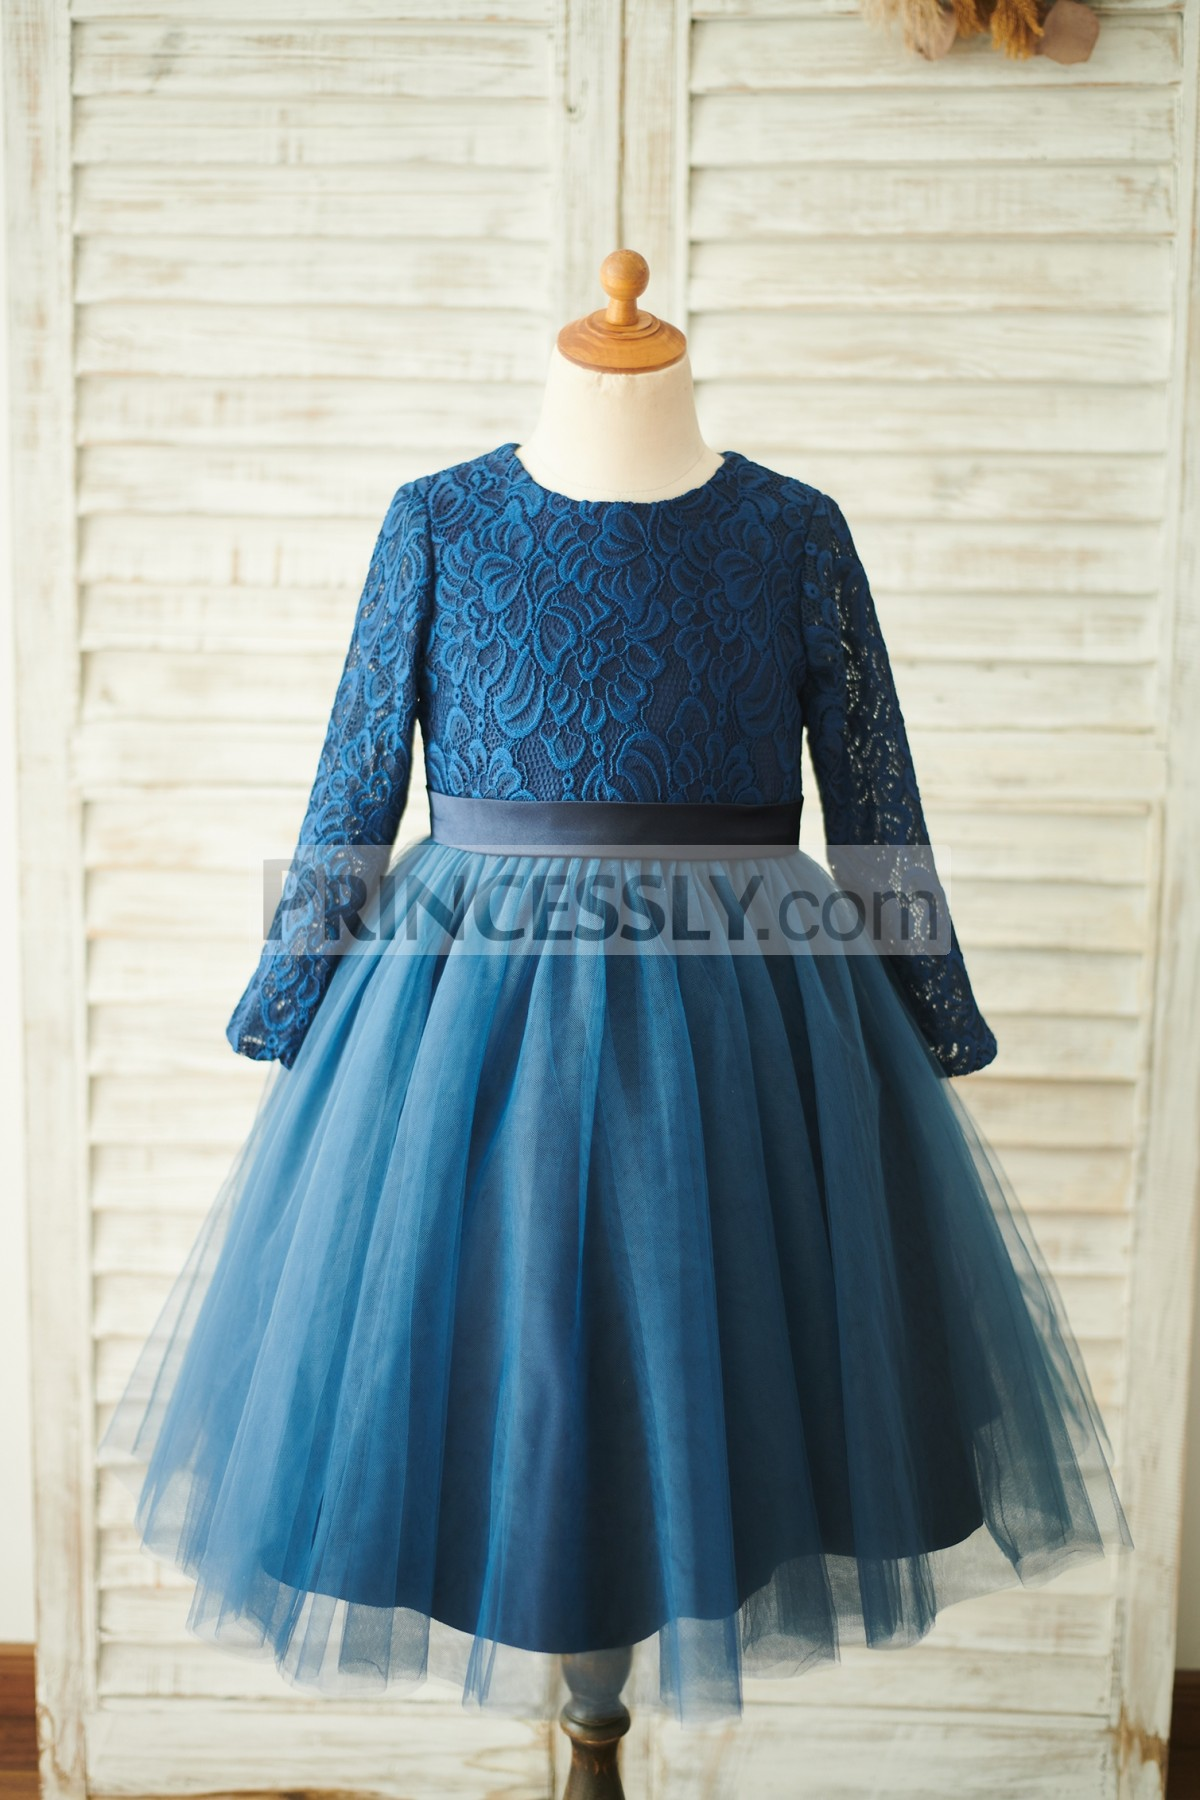 178e2cfe2 Baby Long Sleeve Navy Blue Lace Tulle Wedding Toddler Girl Dress ...